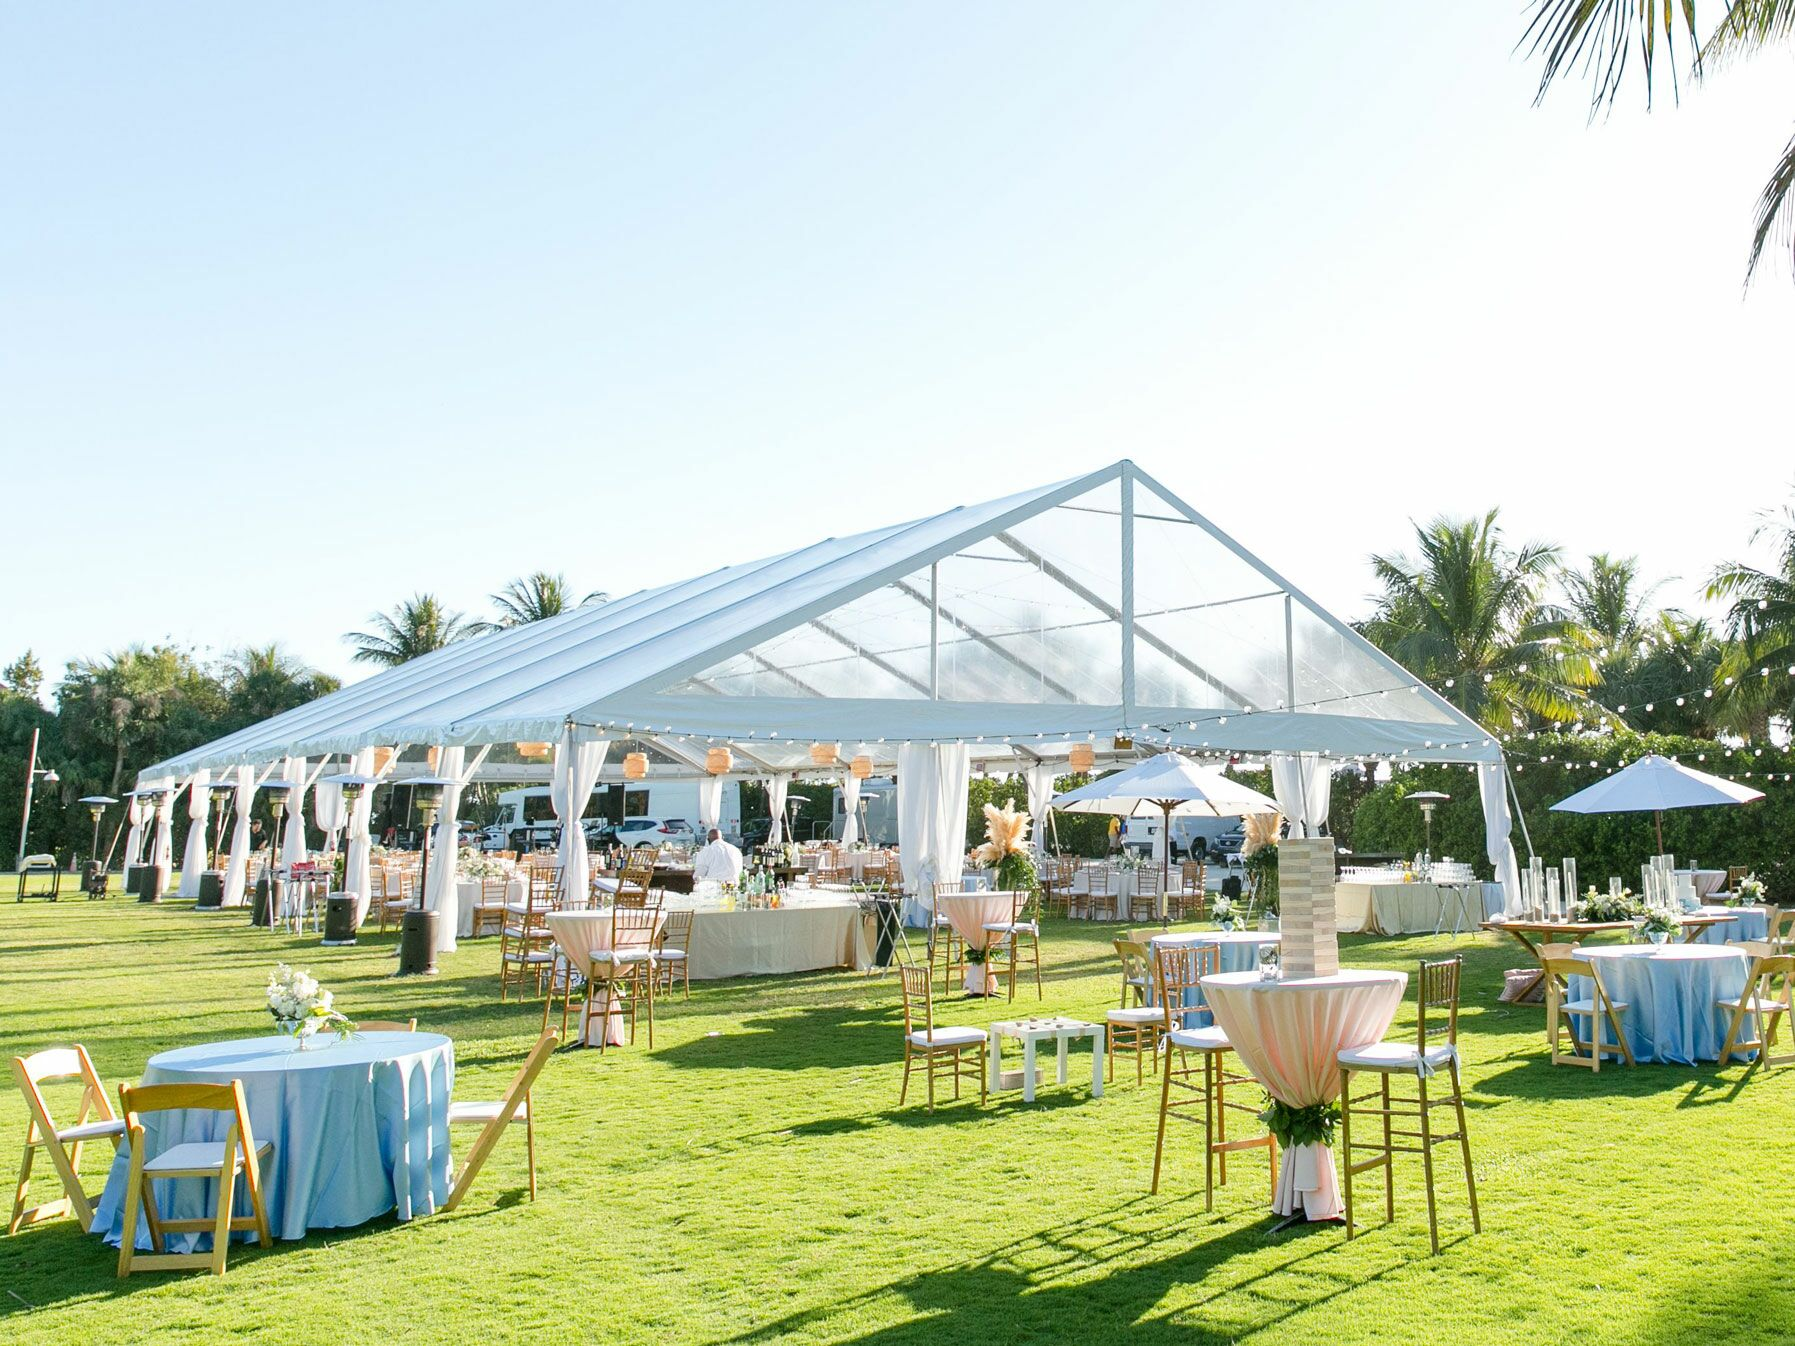 Tent Wedding Tips 6 Tips For Outdoor Weddings And Tent Receptions